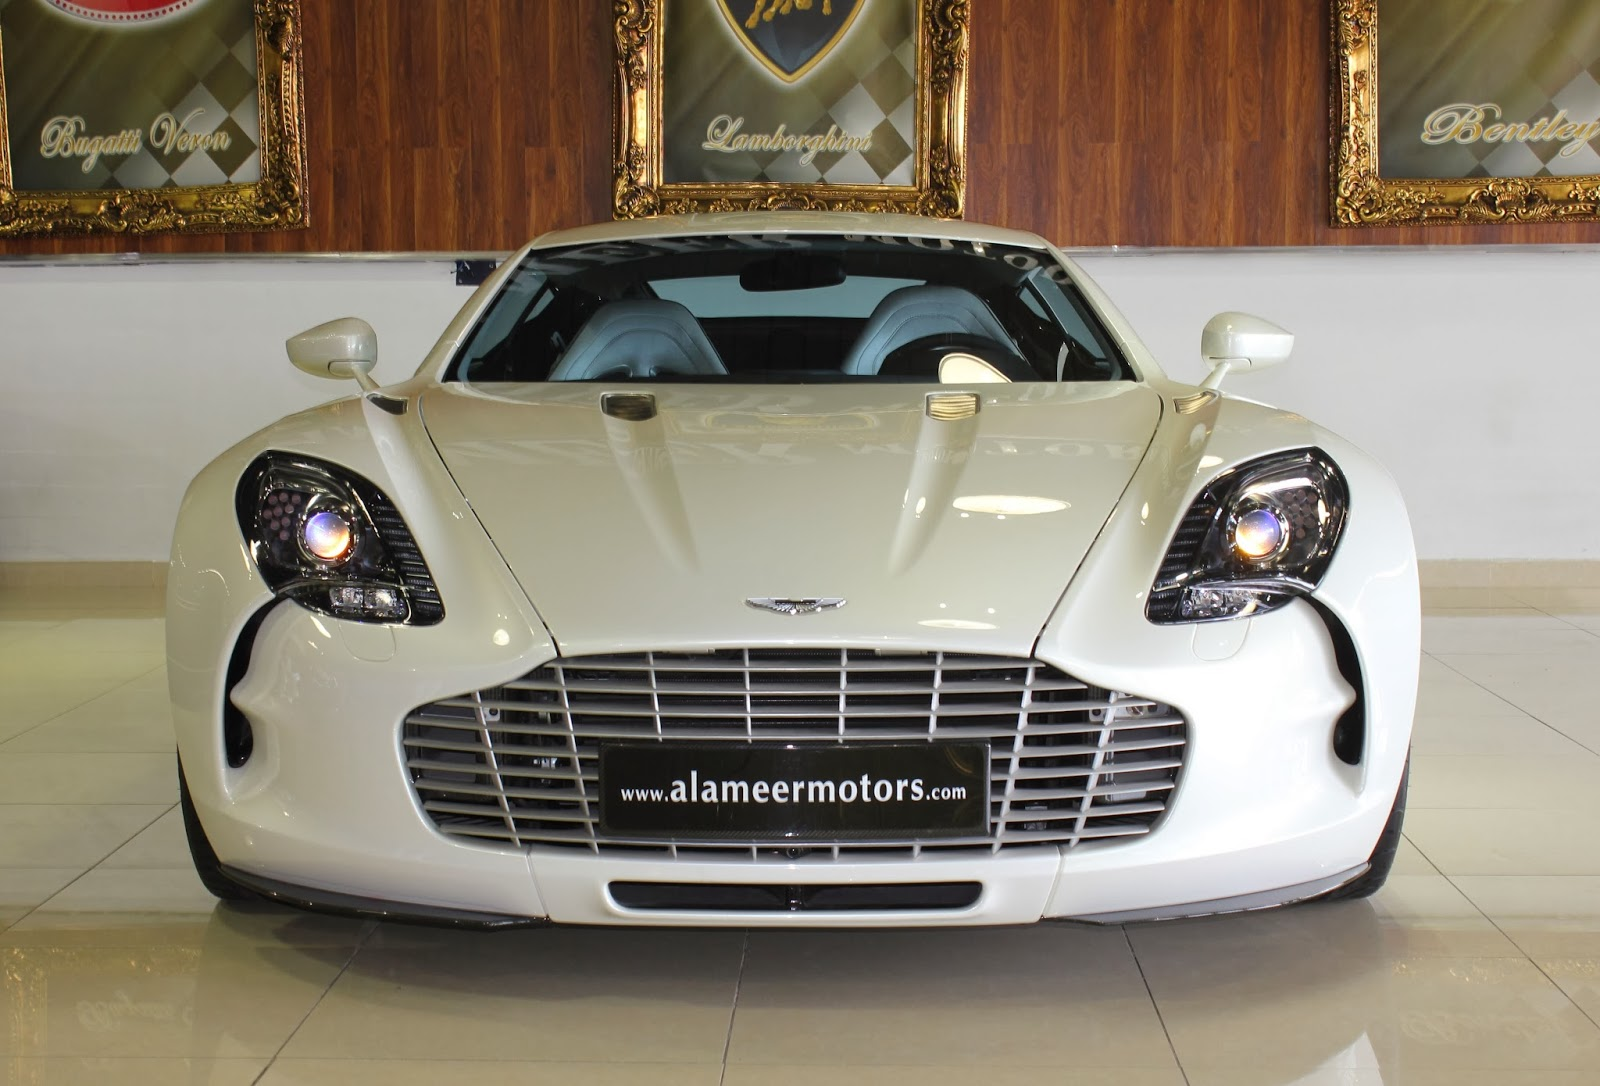 Brand New Aston Martin One77 for Sale  ebeastscom